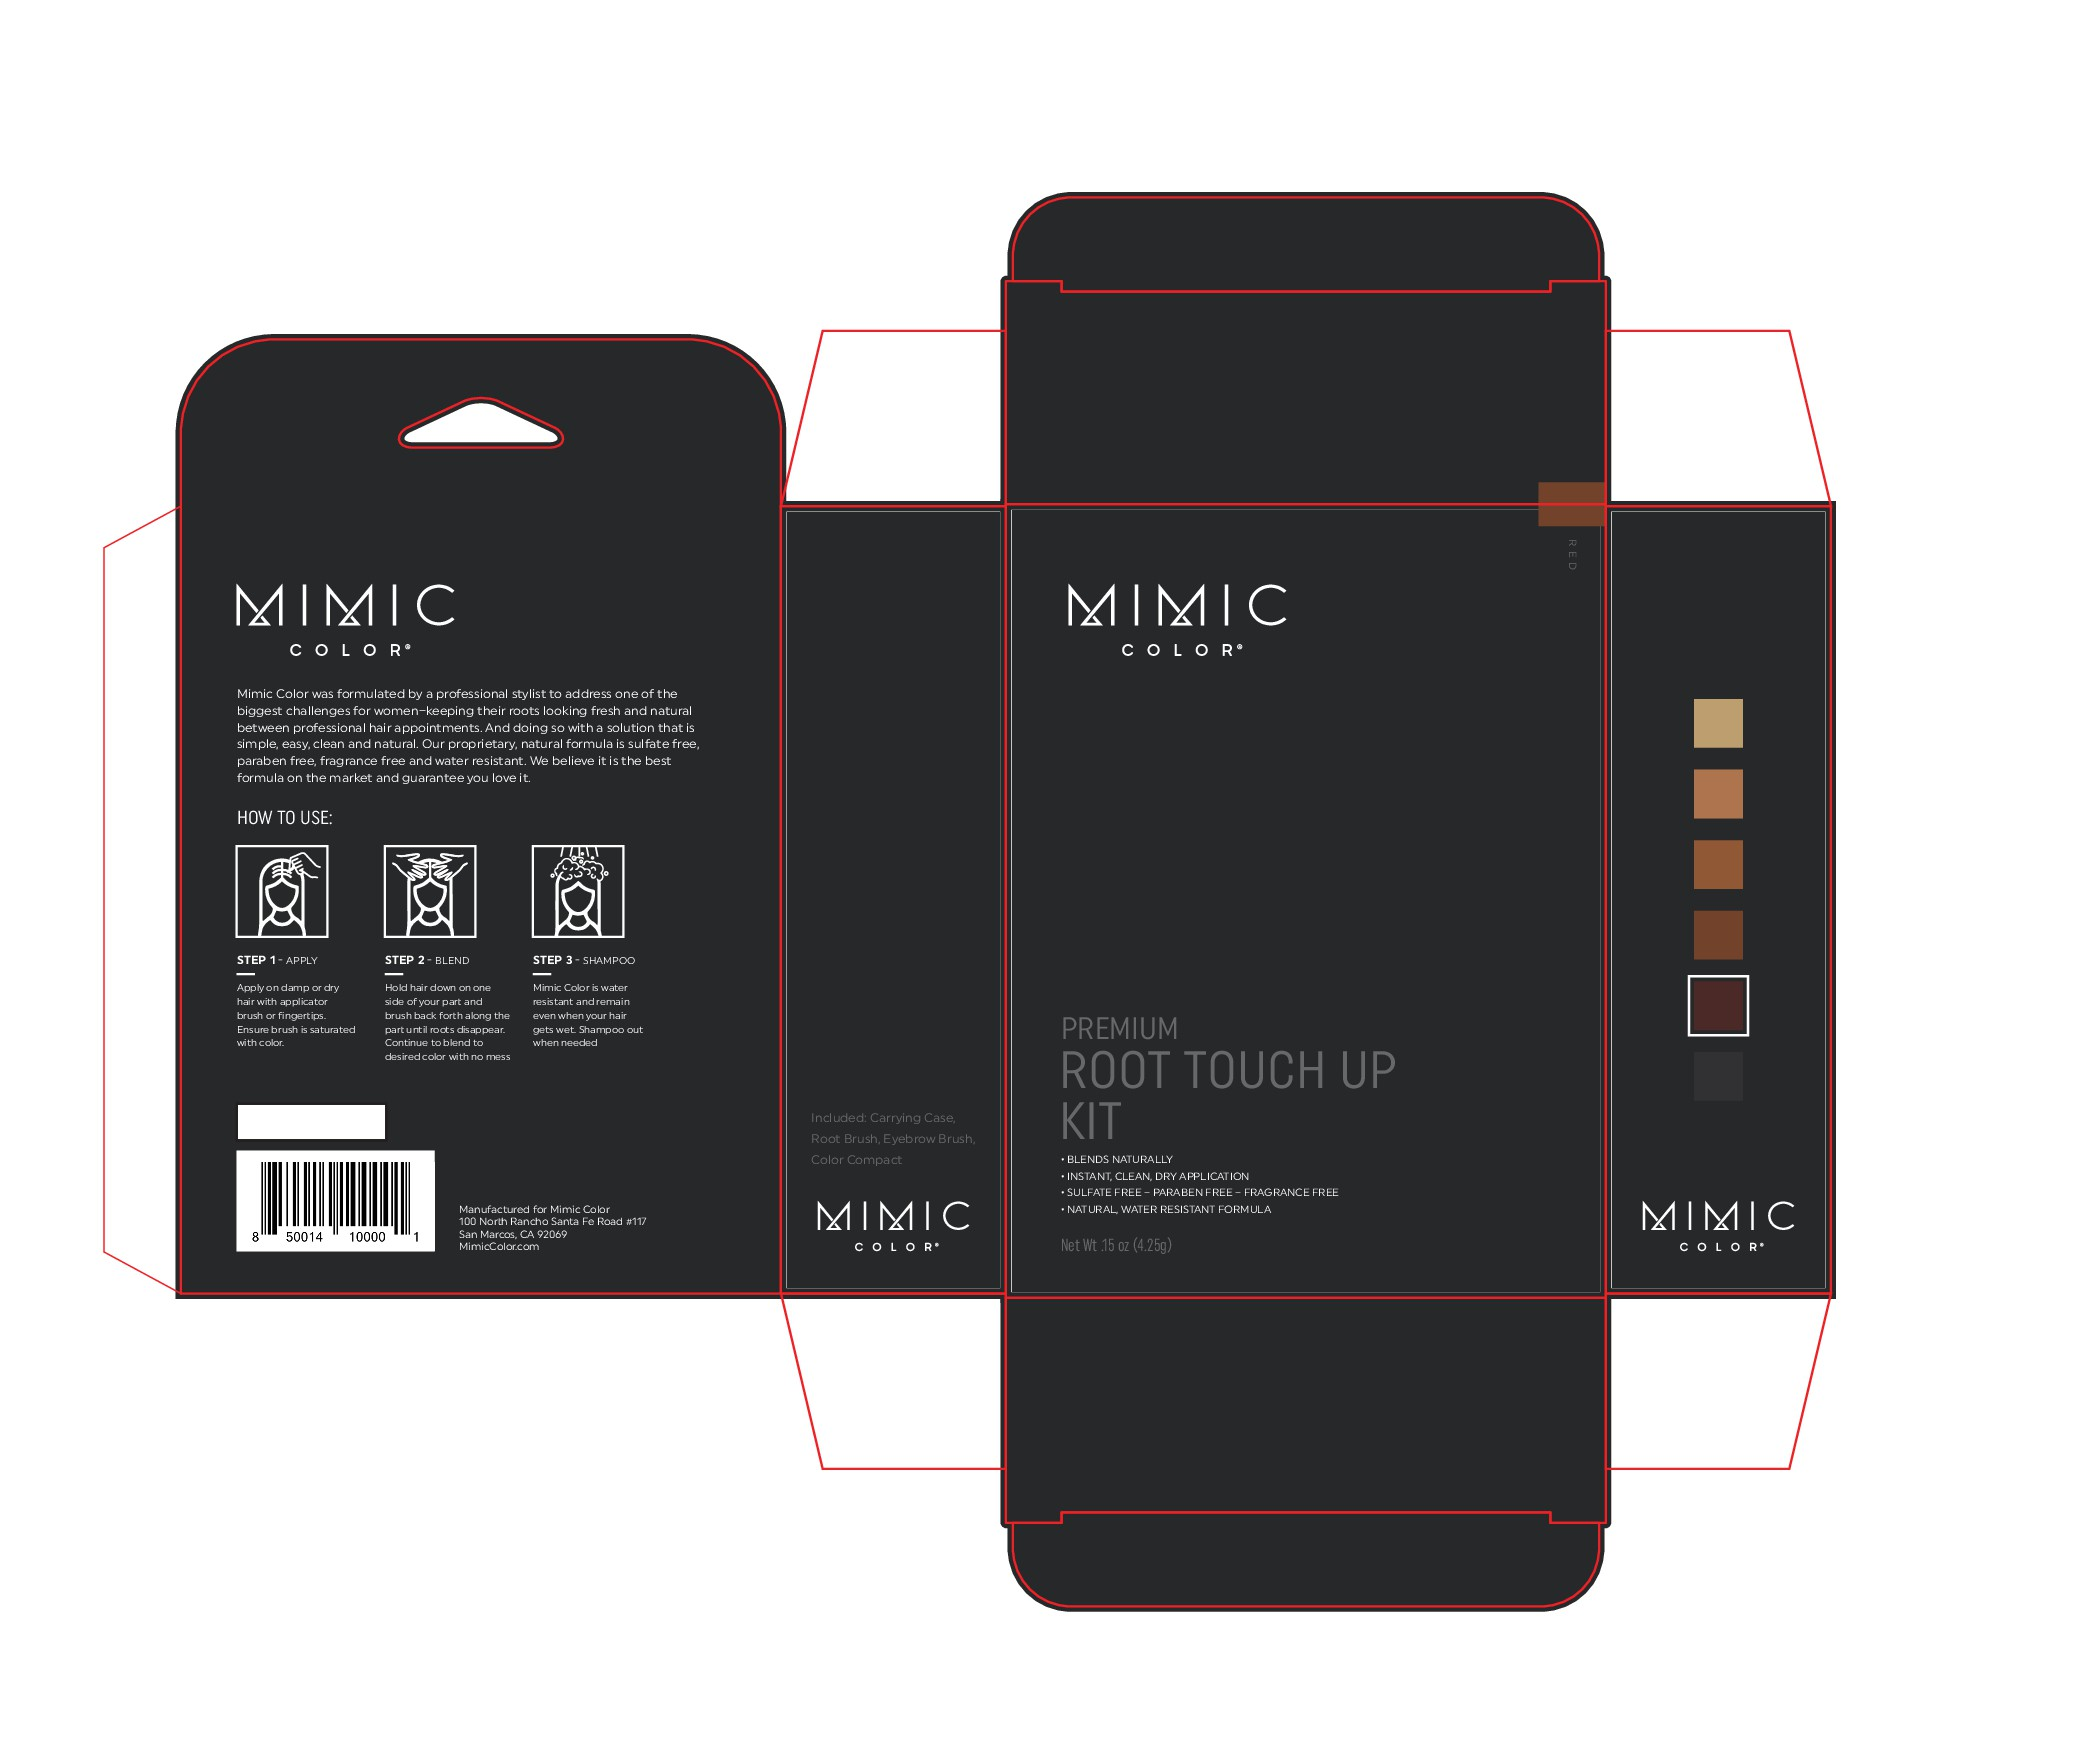 Premium Mimic color packaging for high end salons